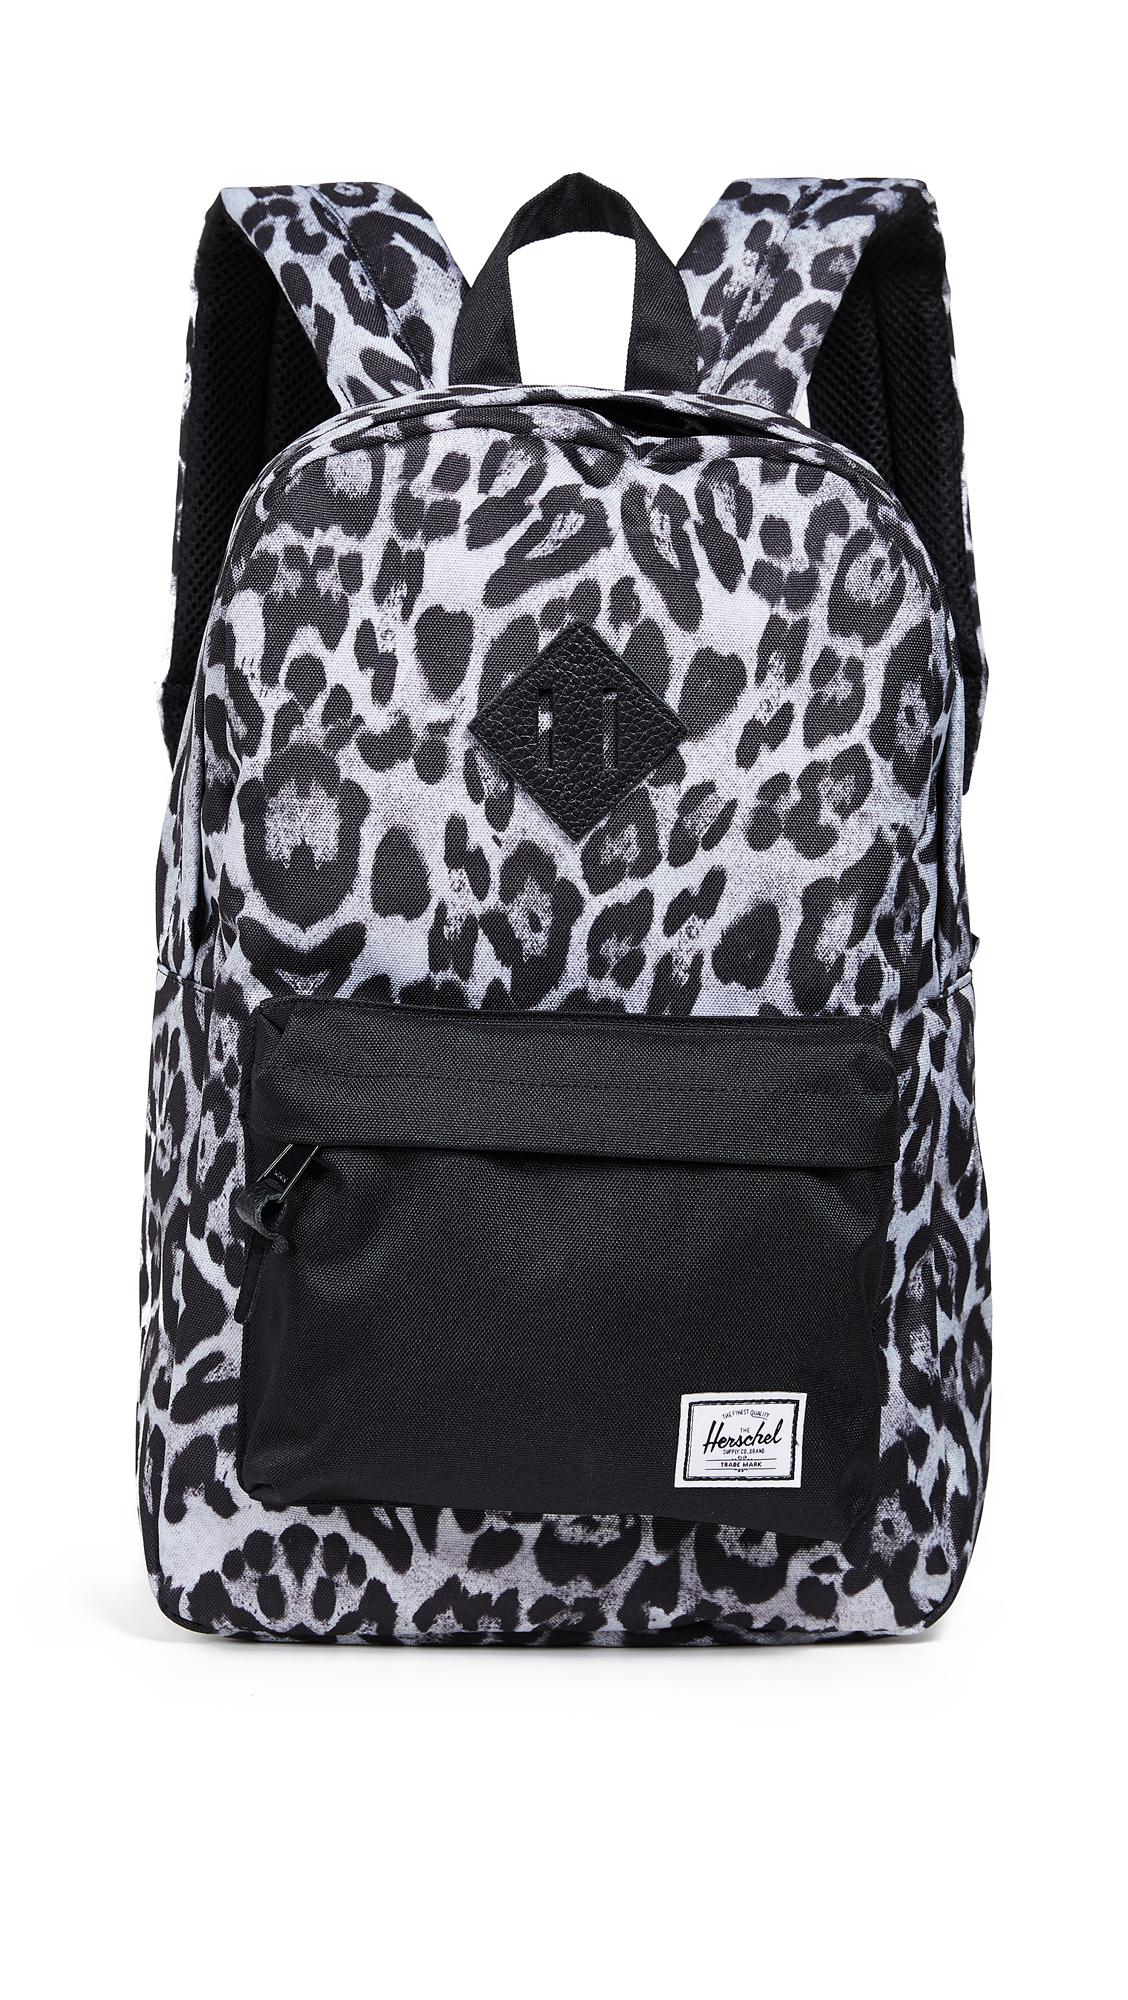 092991847e Herschel Supply Co. Heritage Mid Volume Backpack In Snow Leopard Black